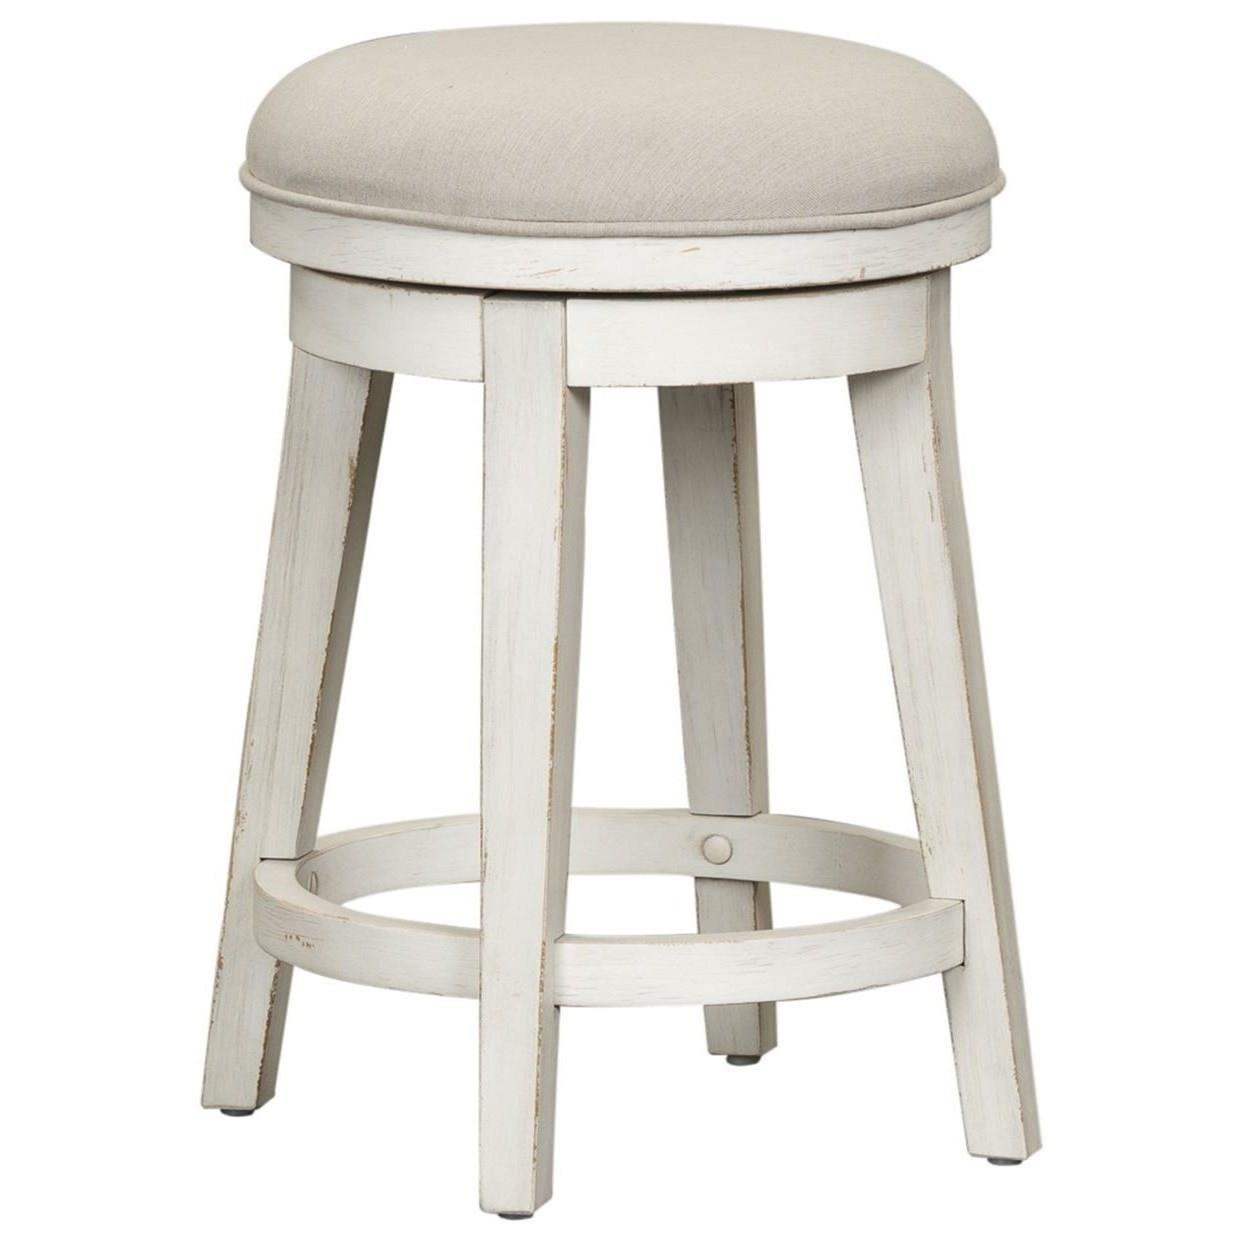 Modern Farmhouse Console Swivel Stool by Libby at Walker's Furniture